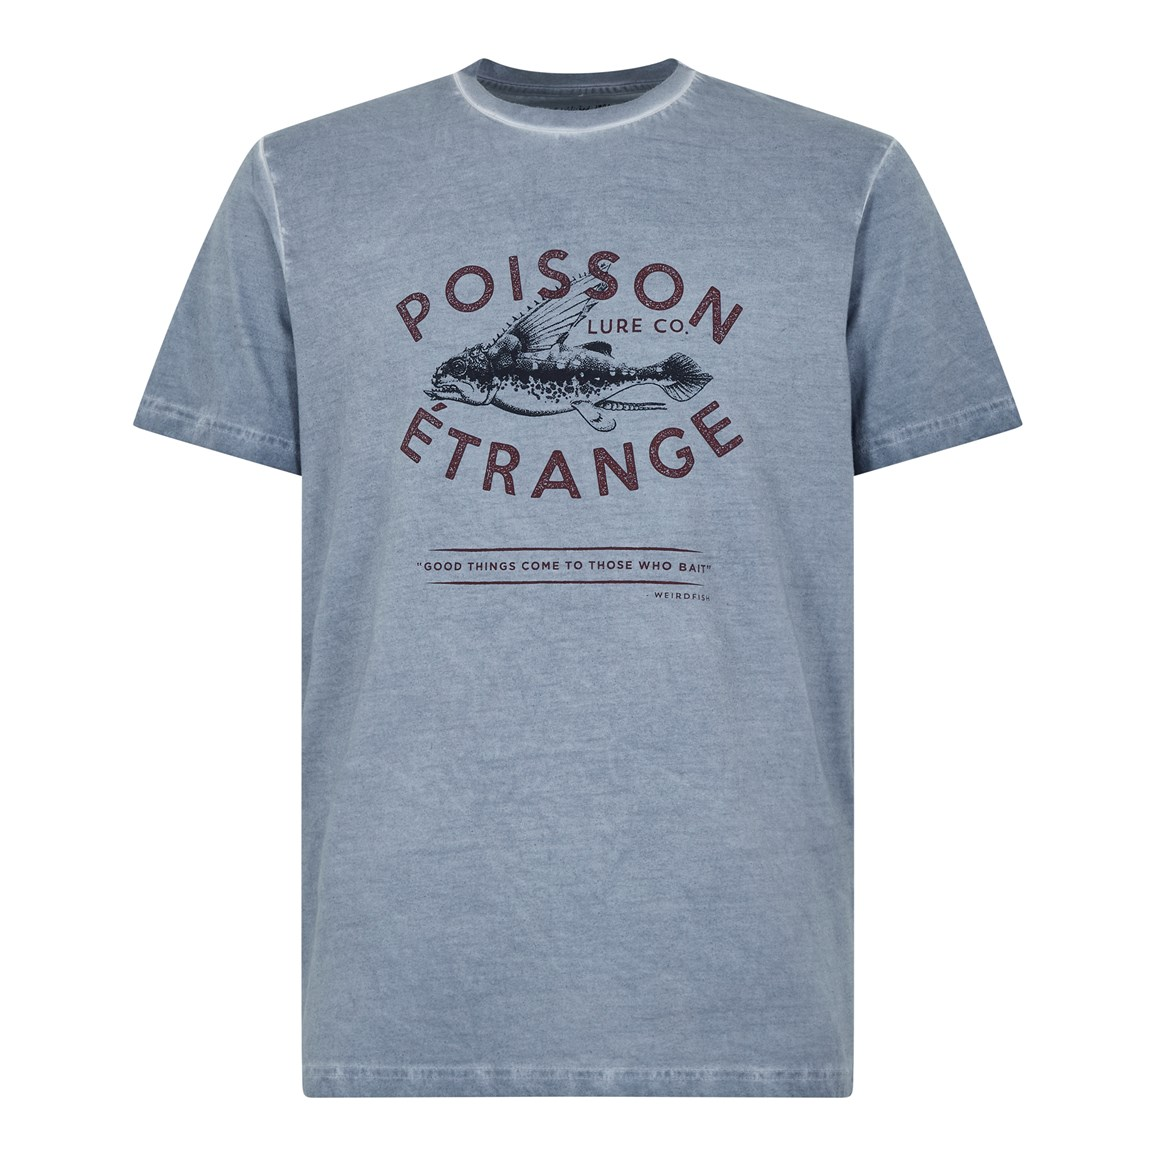 Weird Fish Poisson Branded Graphic T-Shirt Pale Denim